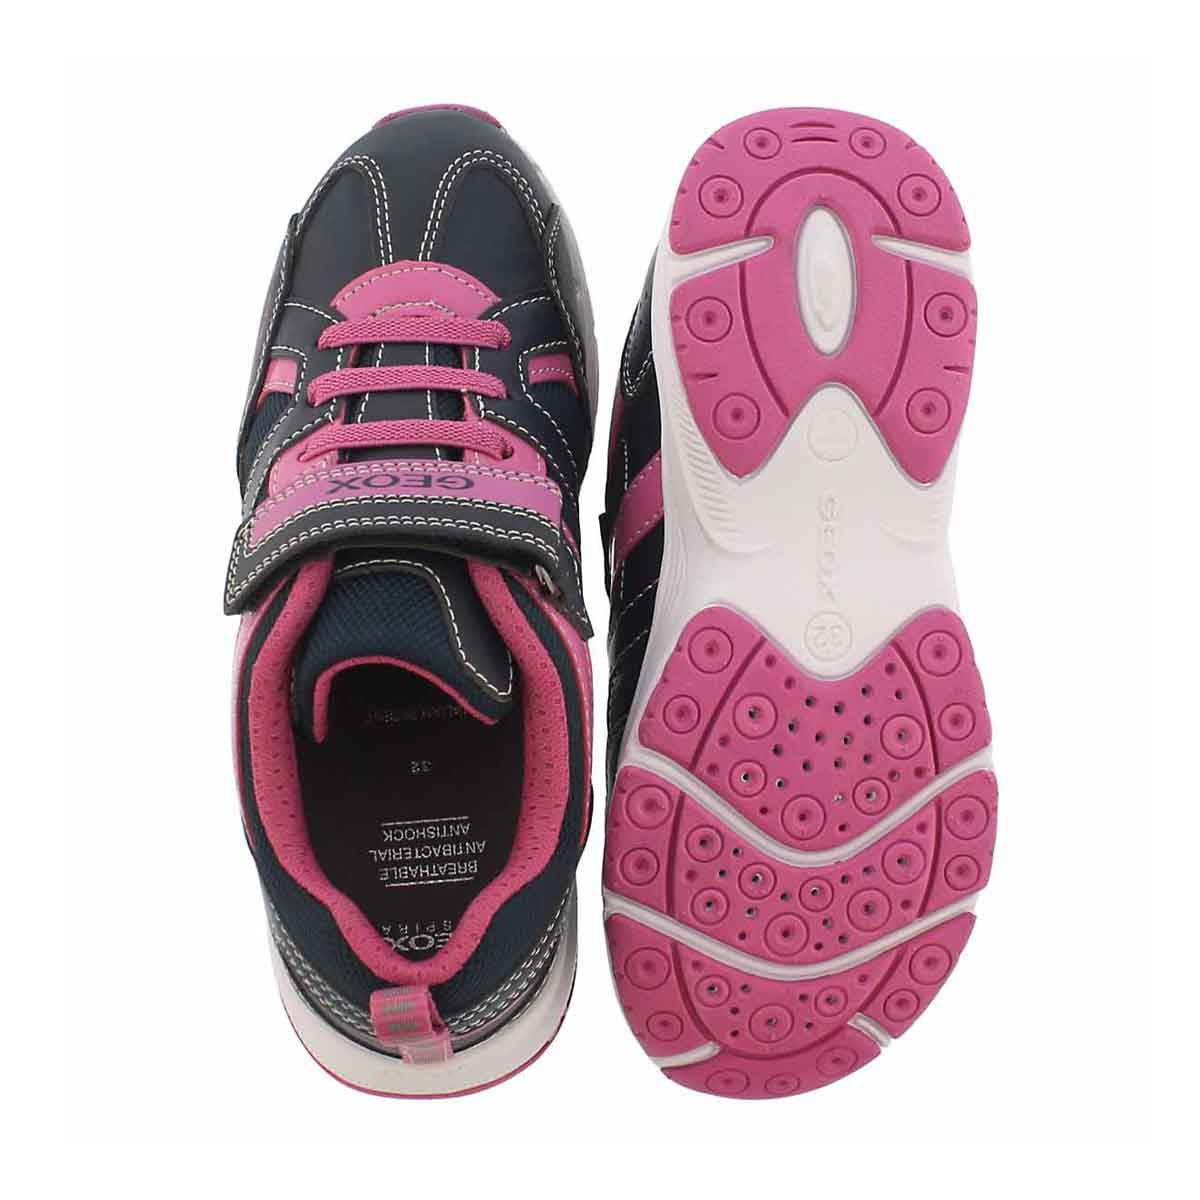 Grls Top Fly navy/fuchsia running shoe